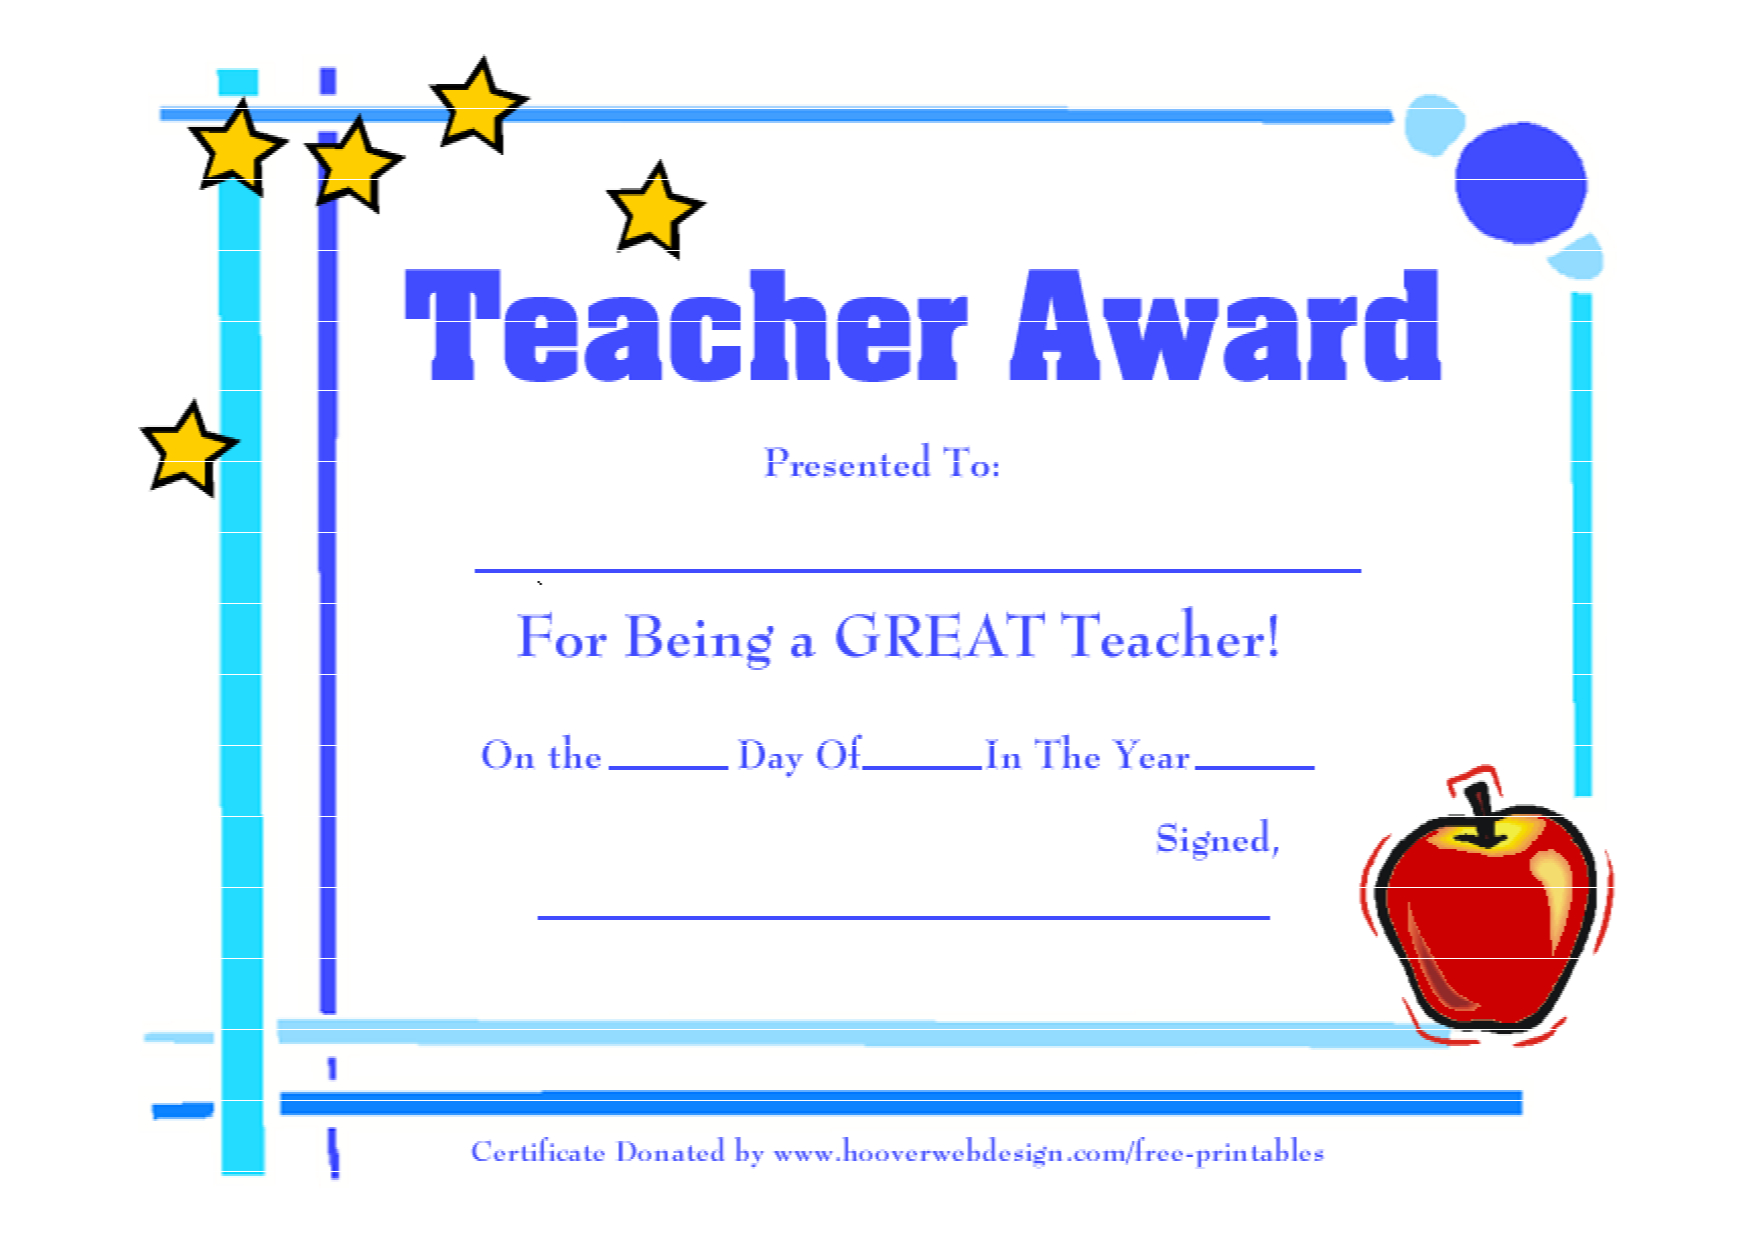 Teacher Awards 9 New Certificat Templates For Best Teacher Certificate Templates Free